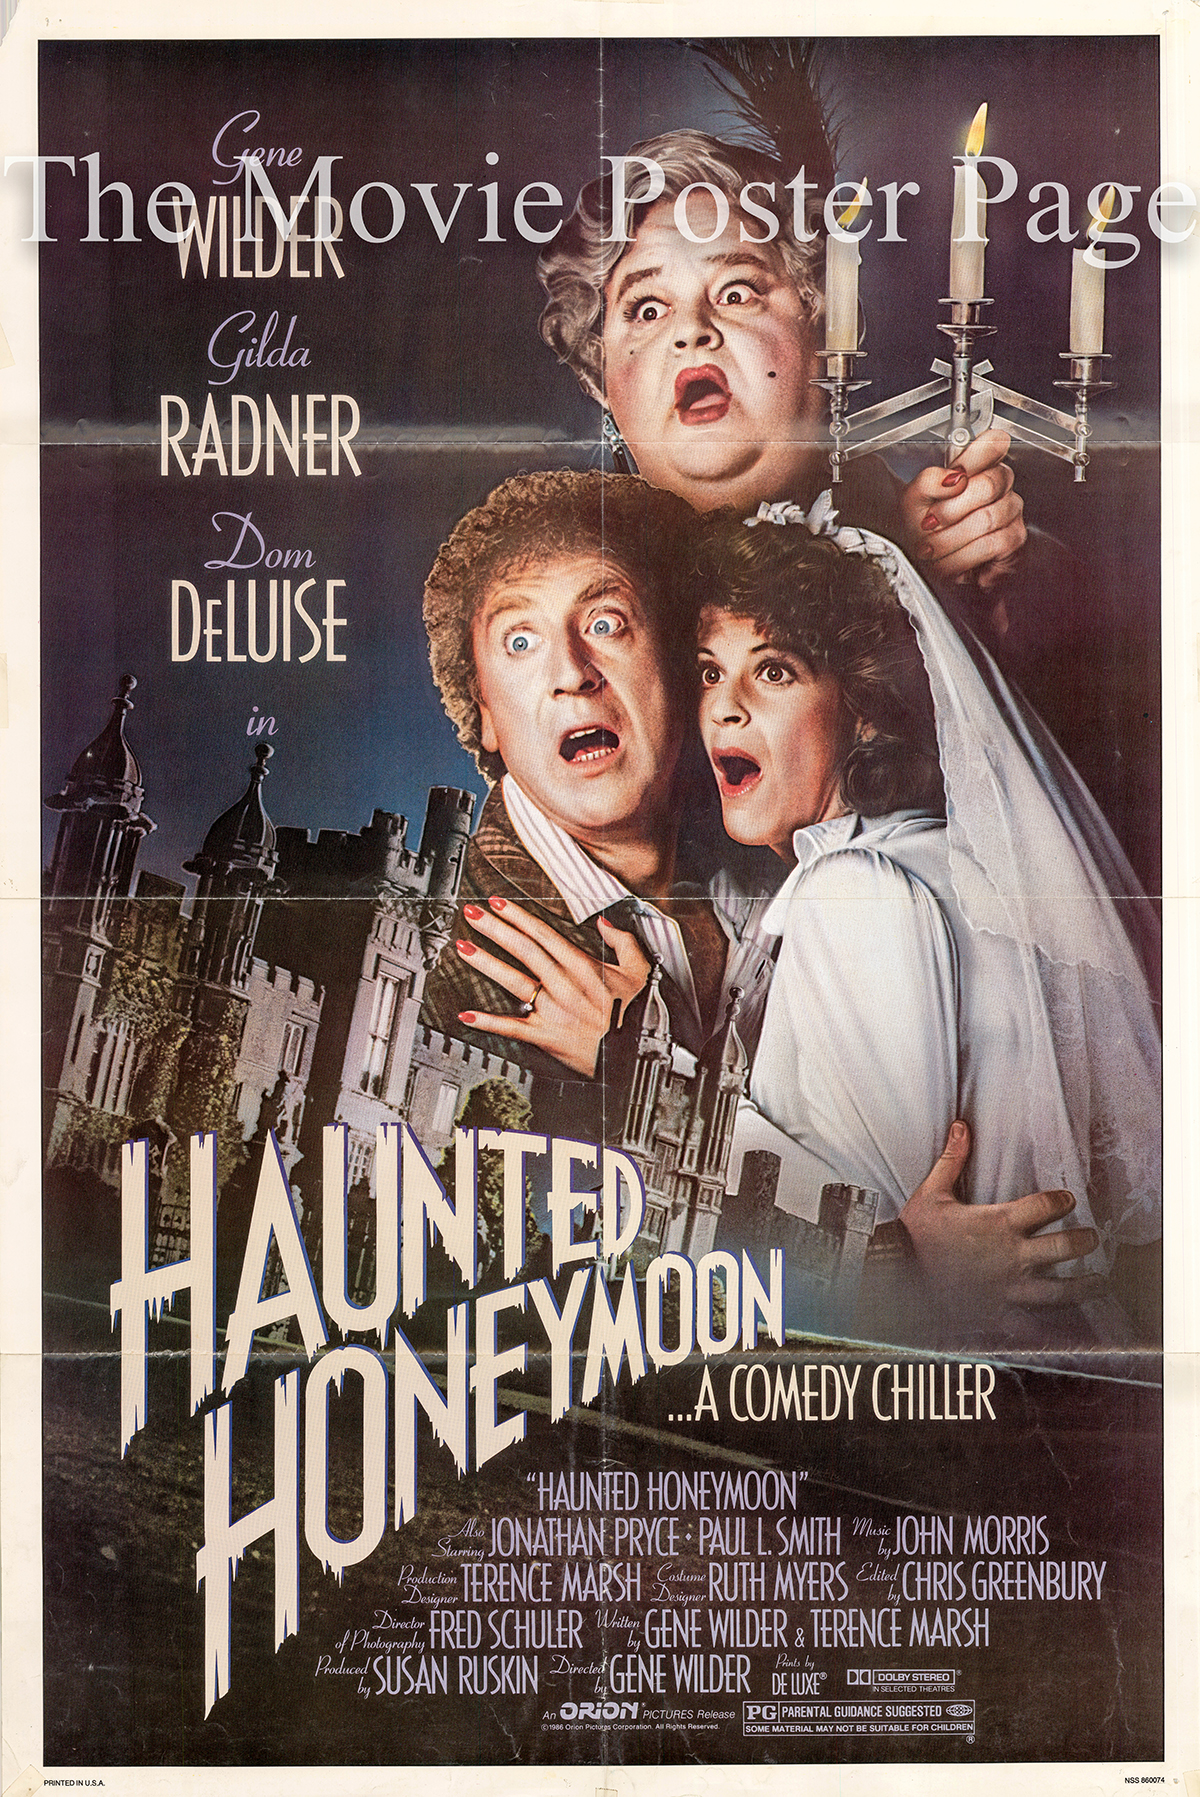 Pictured is a US one-sheet poster for the 1986 Gene Wilder film Haunted Honeymoon starring Gene Wilder as Larry Abbot.